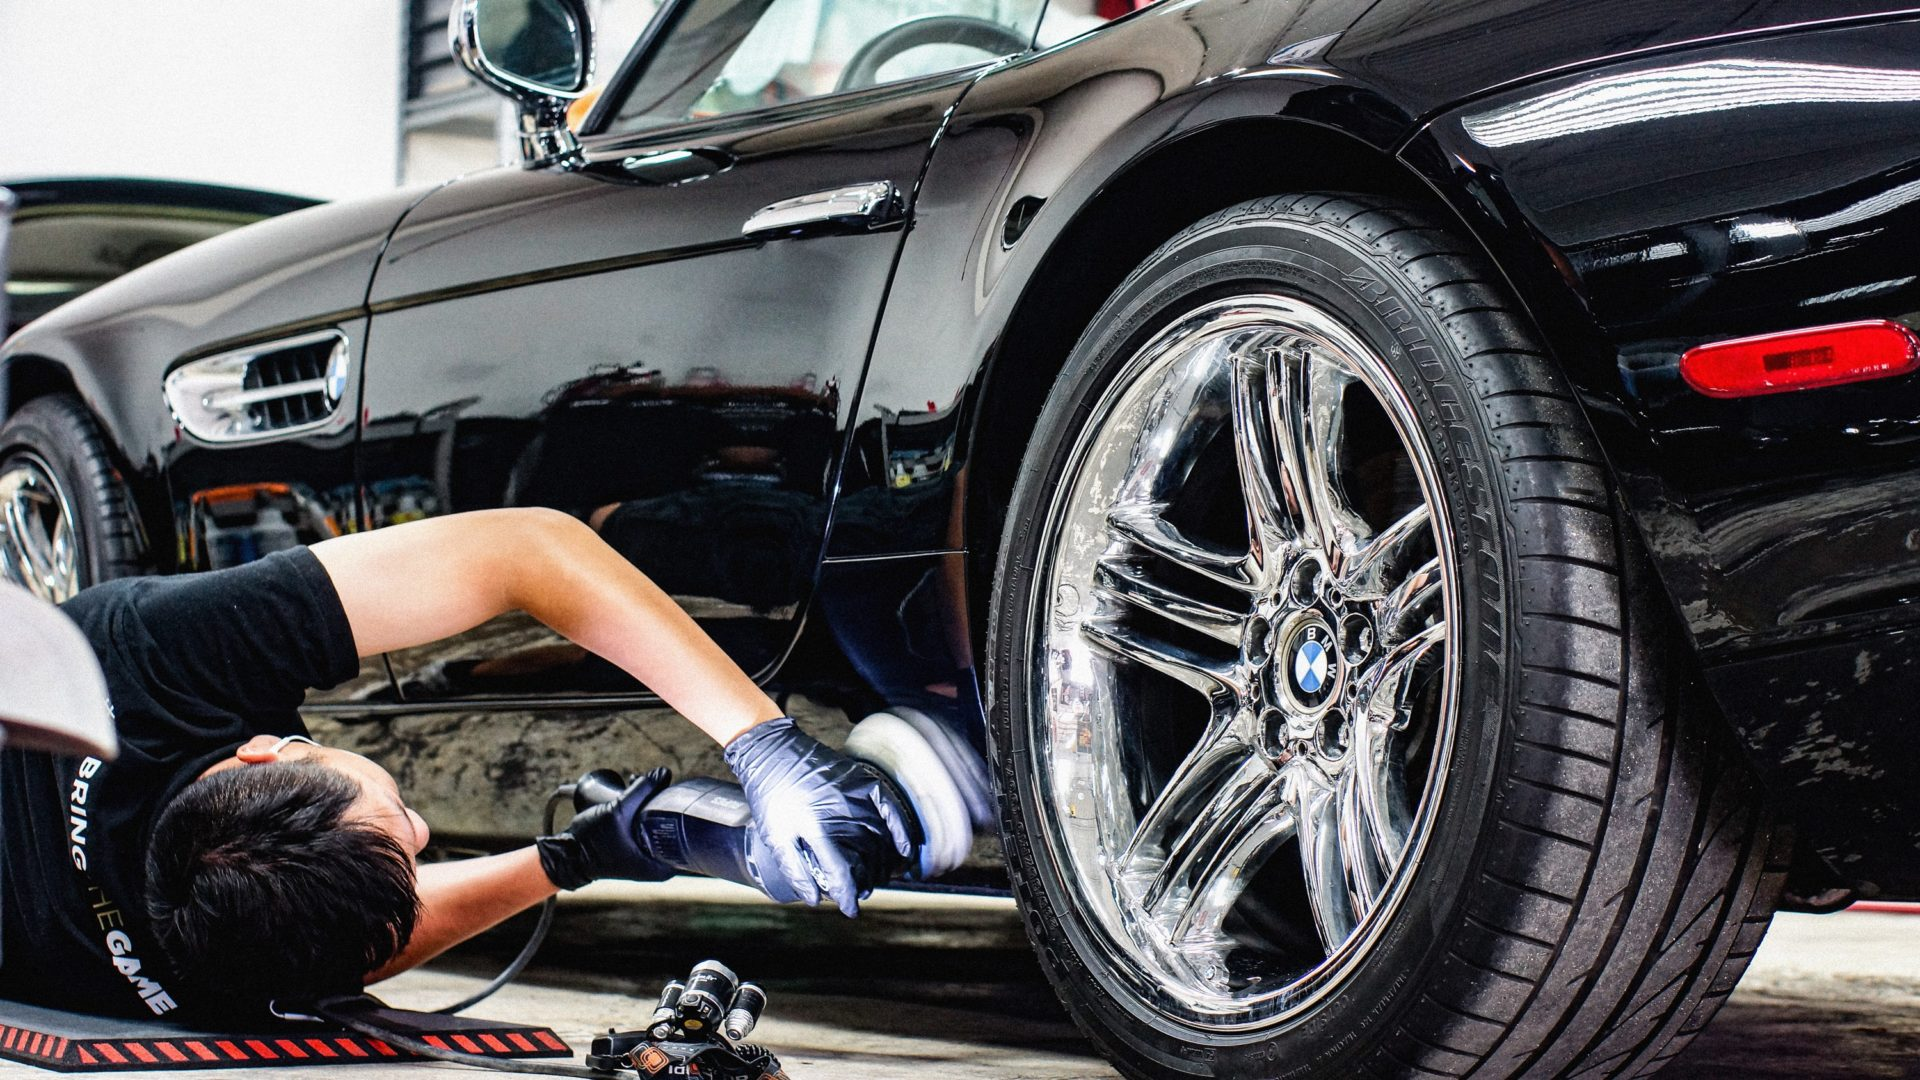 Car Detailing Services Near Me >> Paint Correction Houston | Car Paint Correction Near Me ...